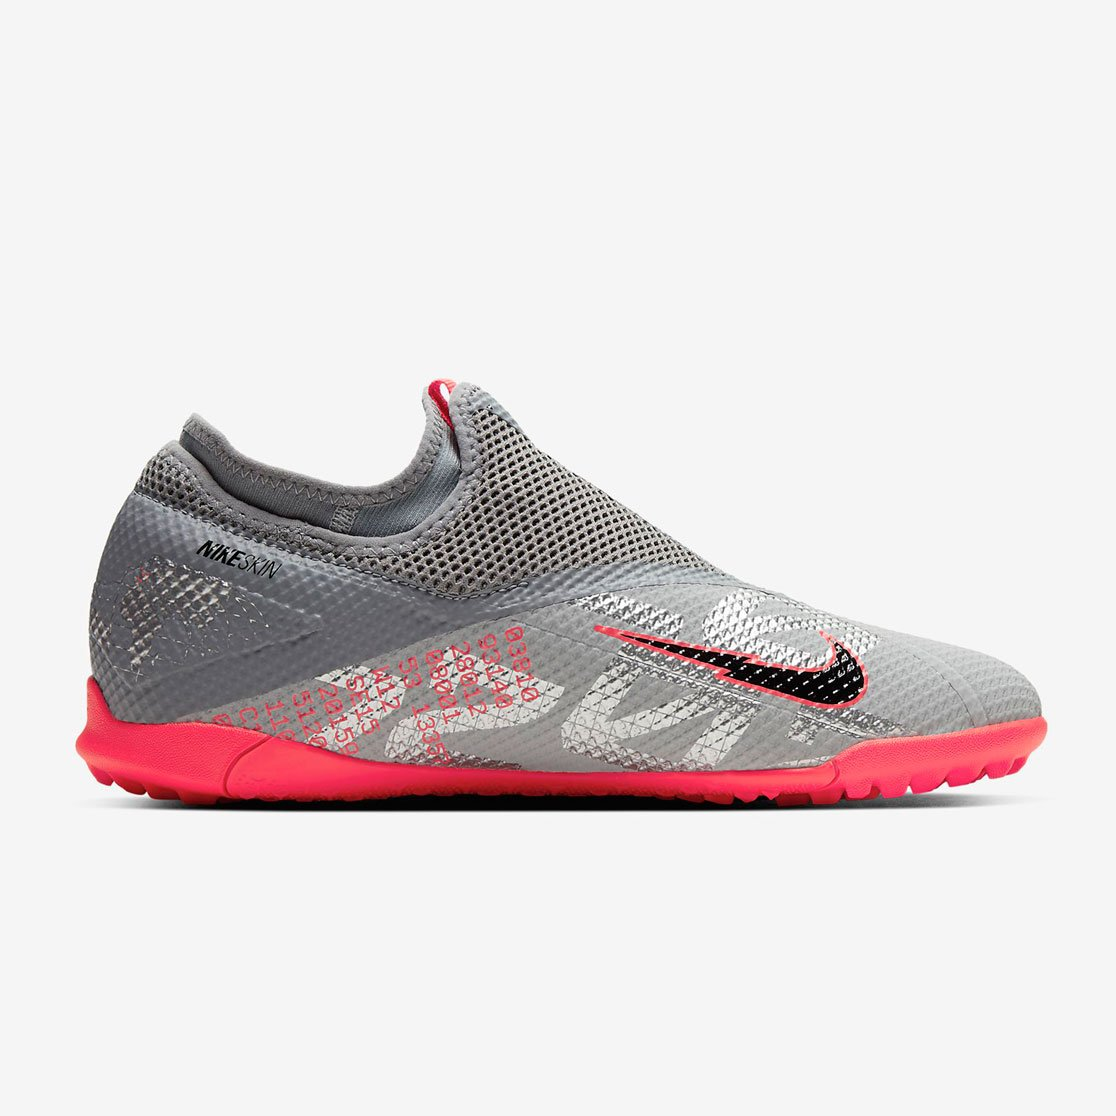 Шиповки Nike Phantom Vision 2 Academy Dynamic Fit TF